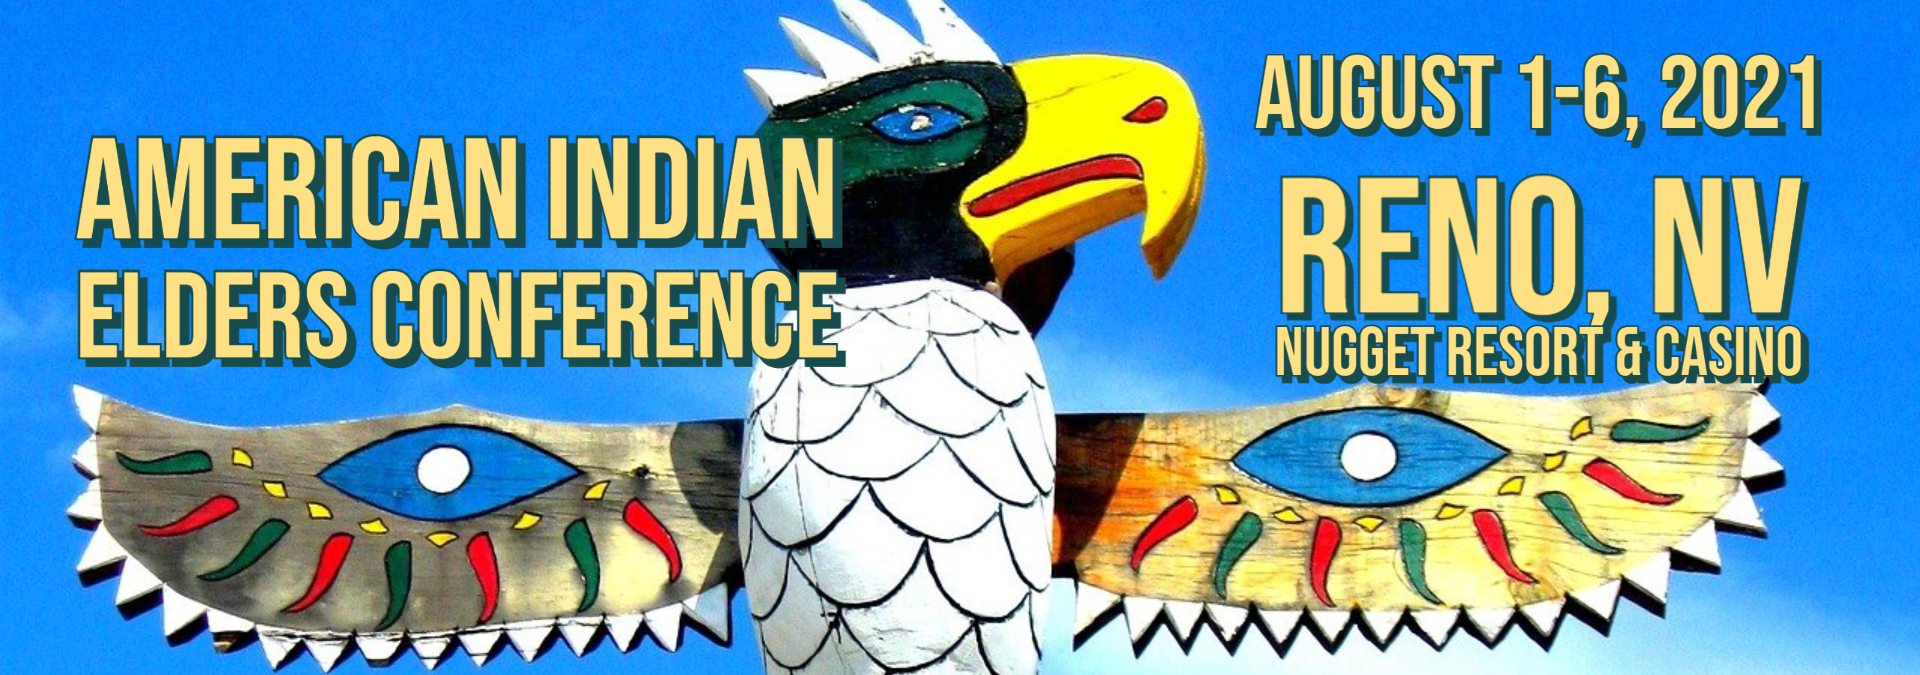 American Indian Elders Conference